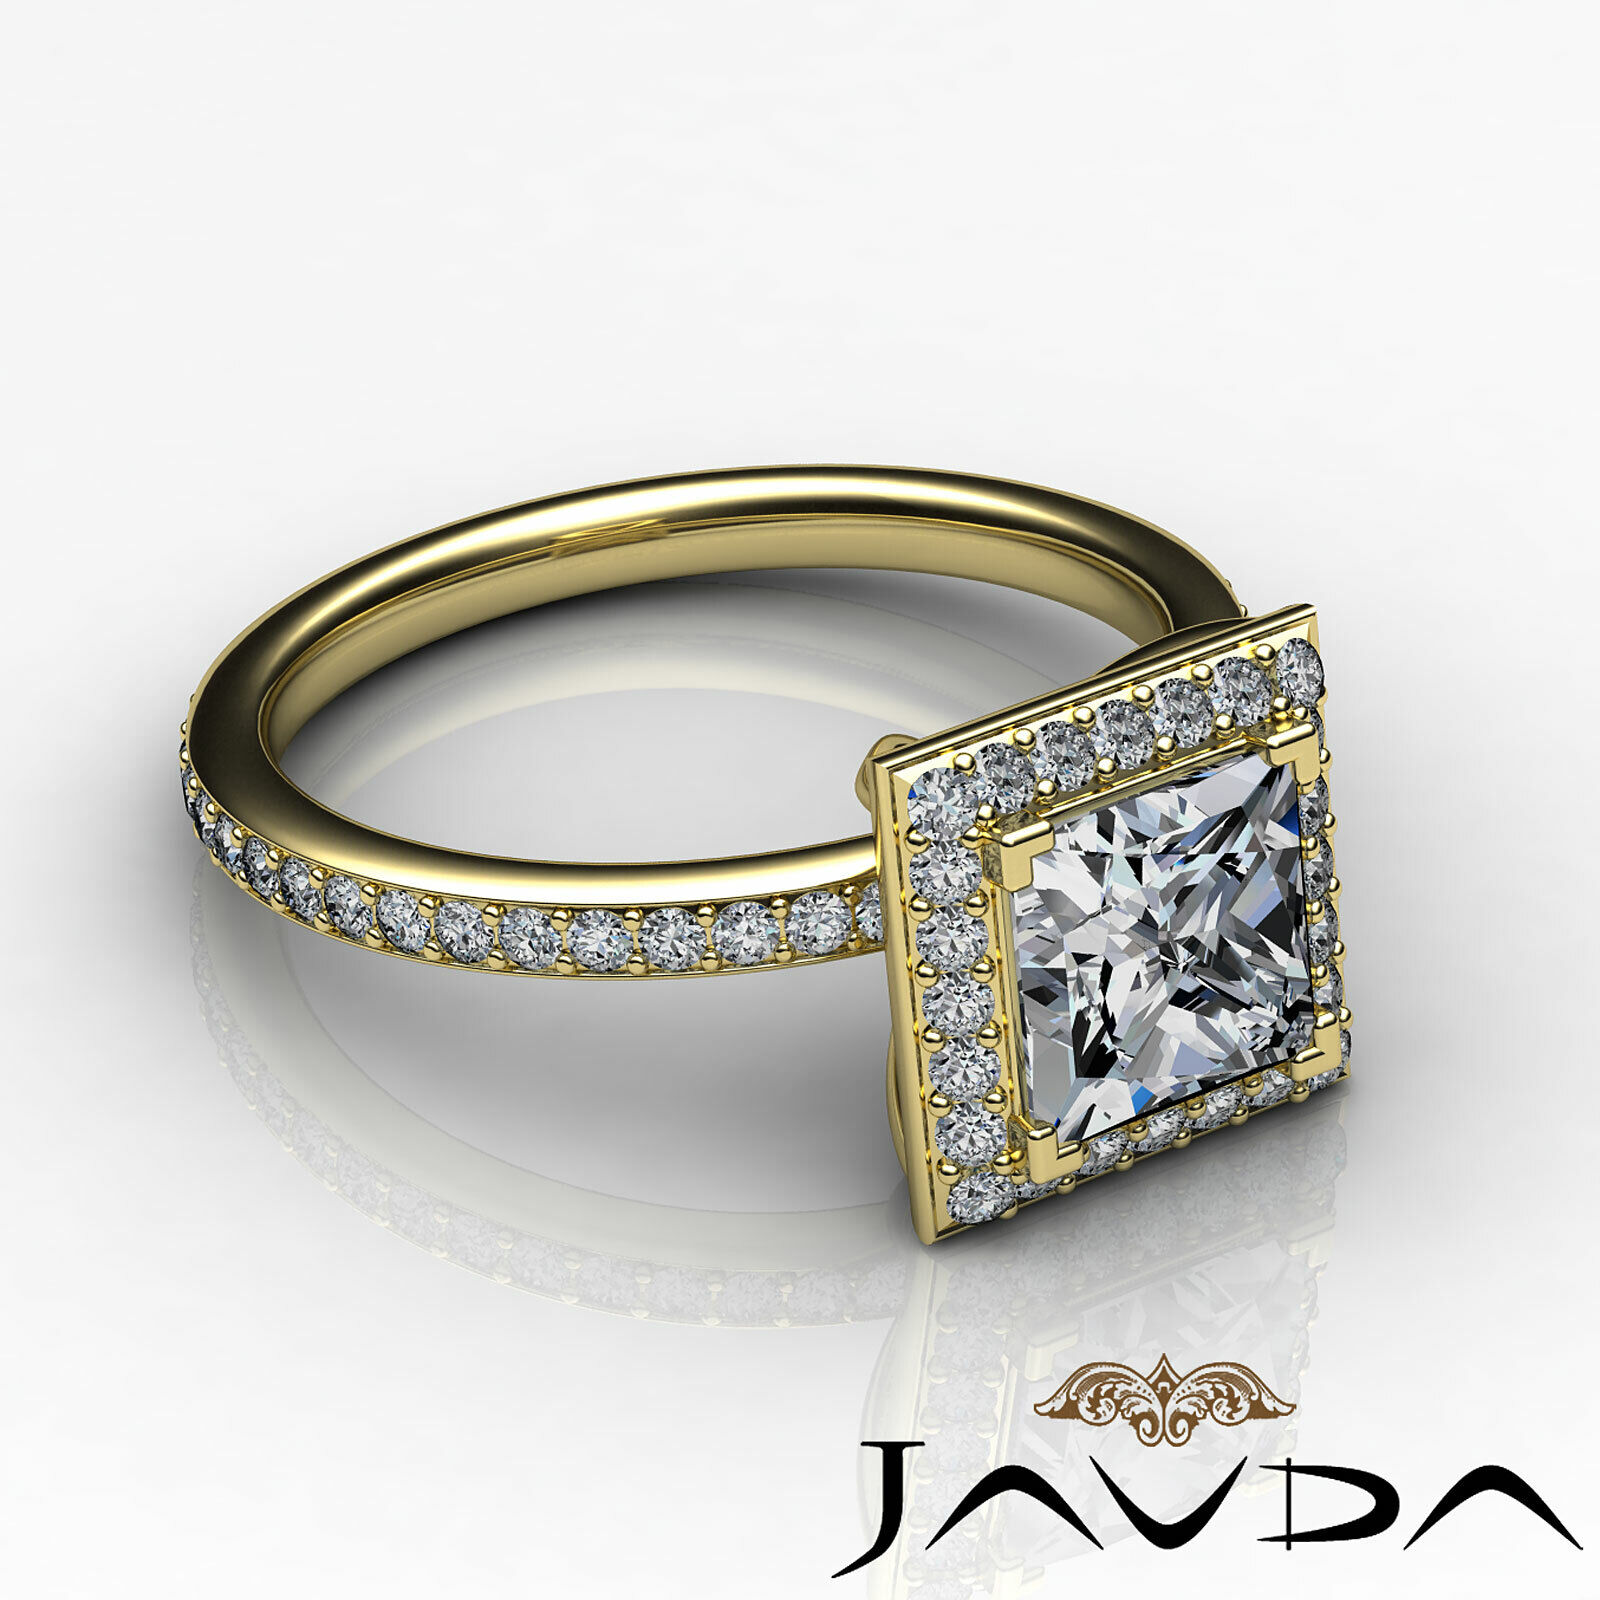 Halo Pave Set Princess Cut Diamond Engagement Ring GIA G Color VS1 Clarity 2.5Ct 9